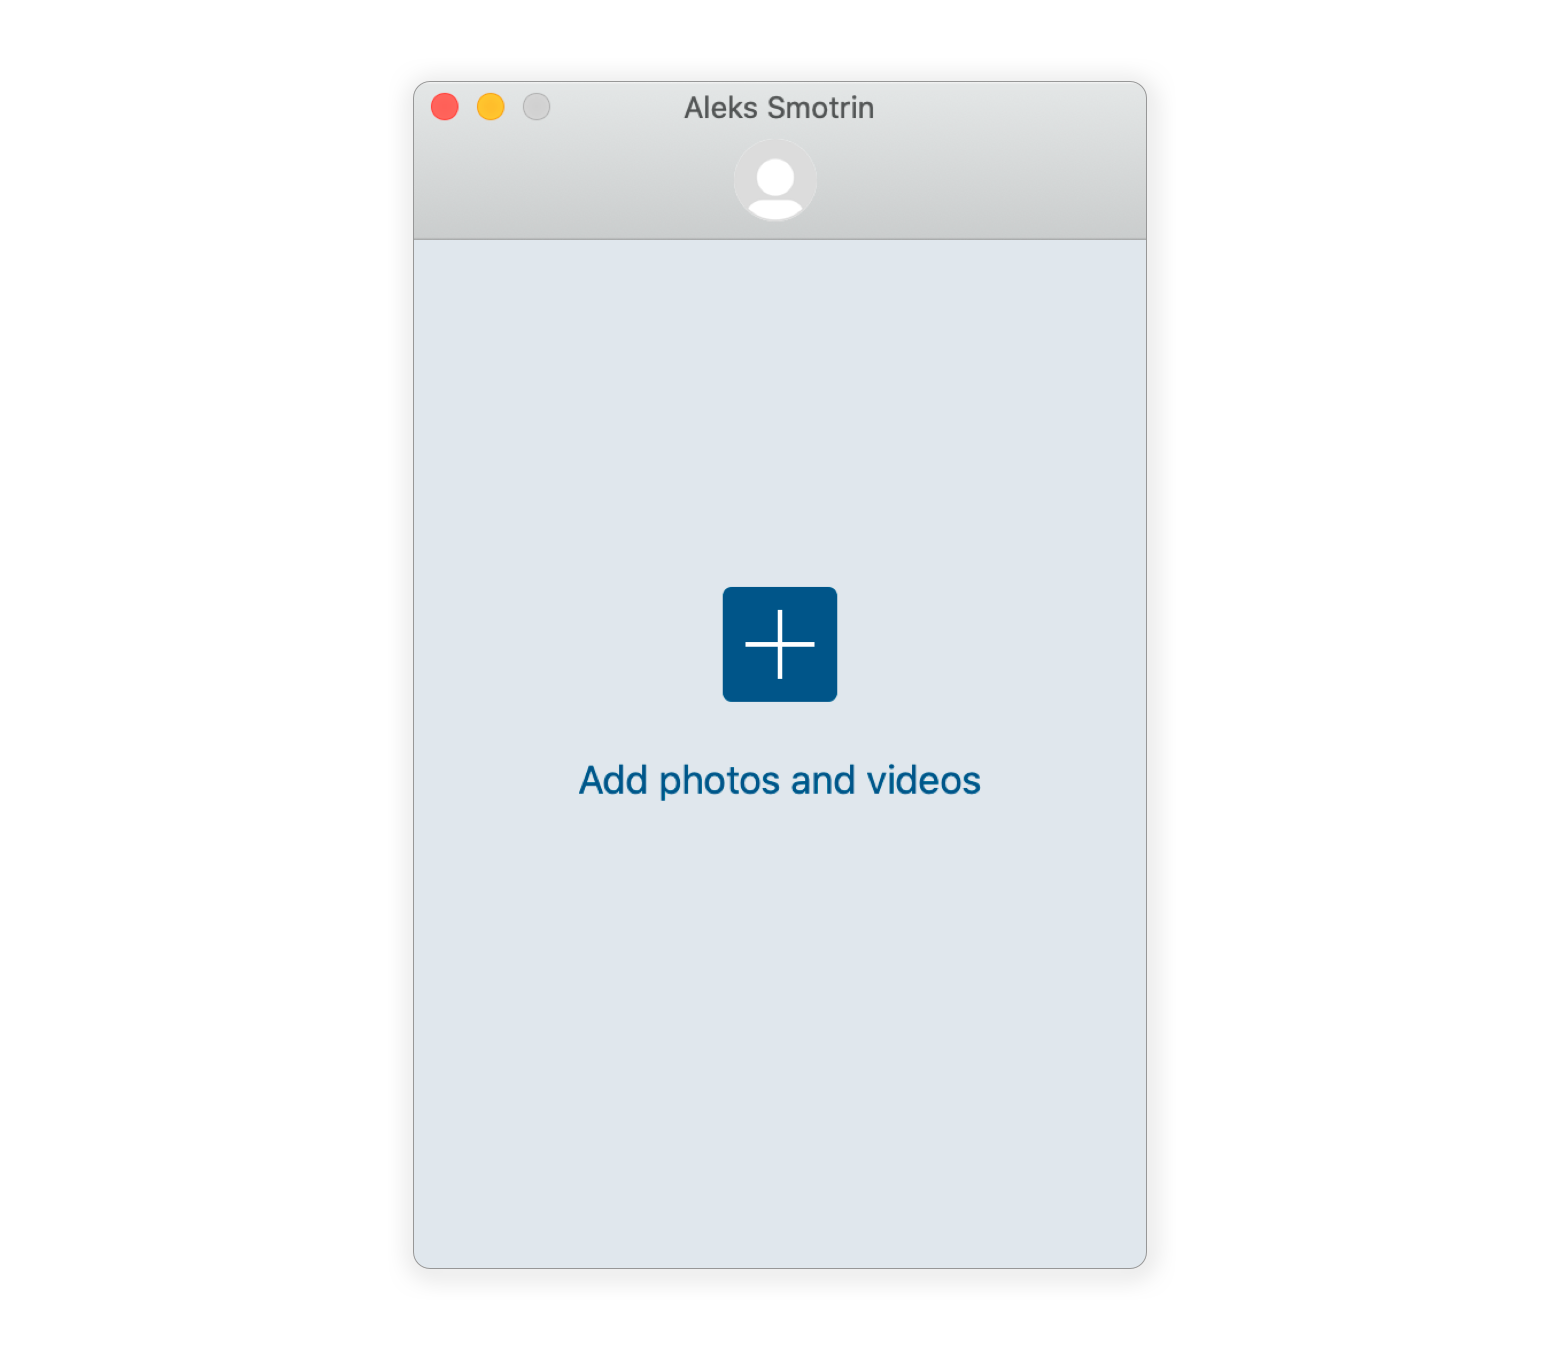 Add photos and videos to Instagram from a Mac